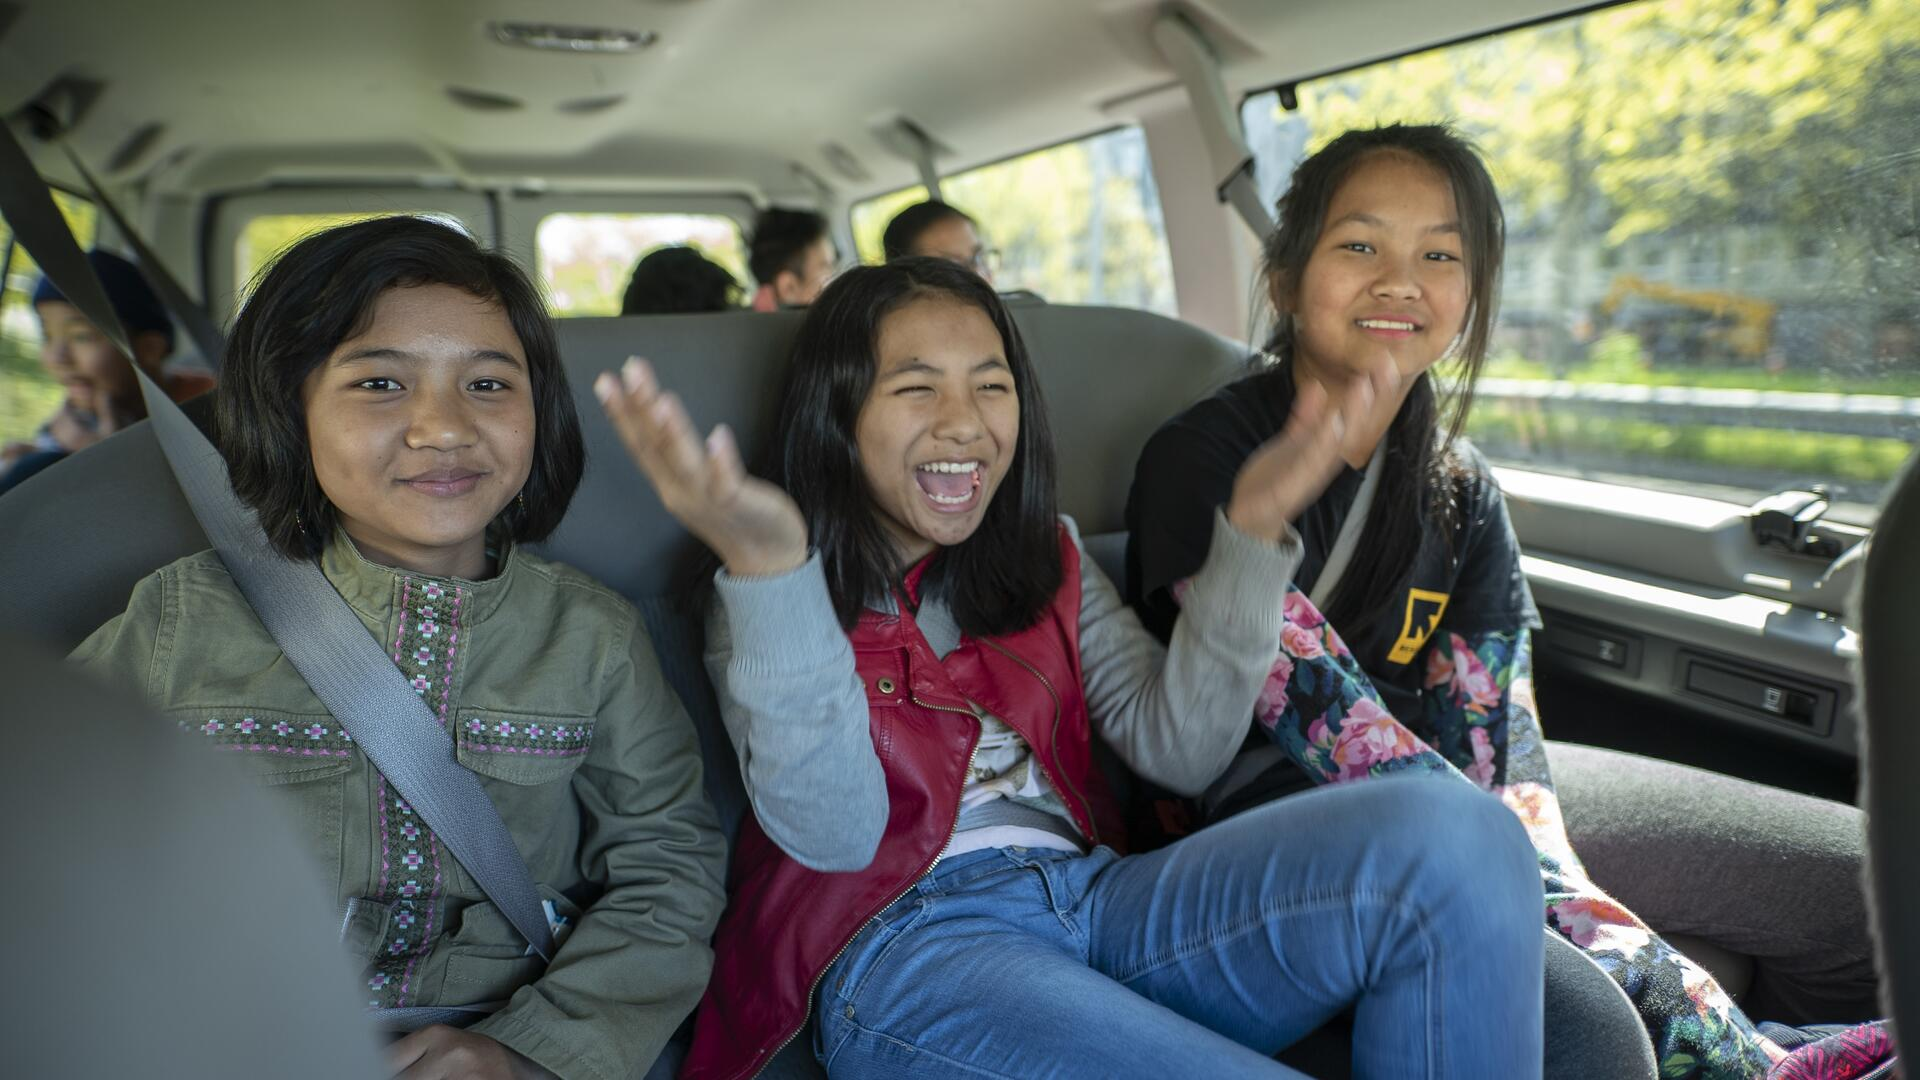 Cing, Cing and Cing are friends from Myanmar who now live near Seattle with their families.